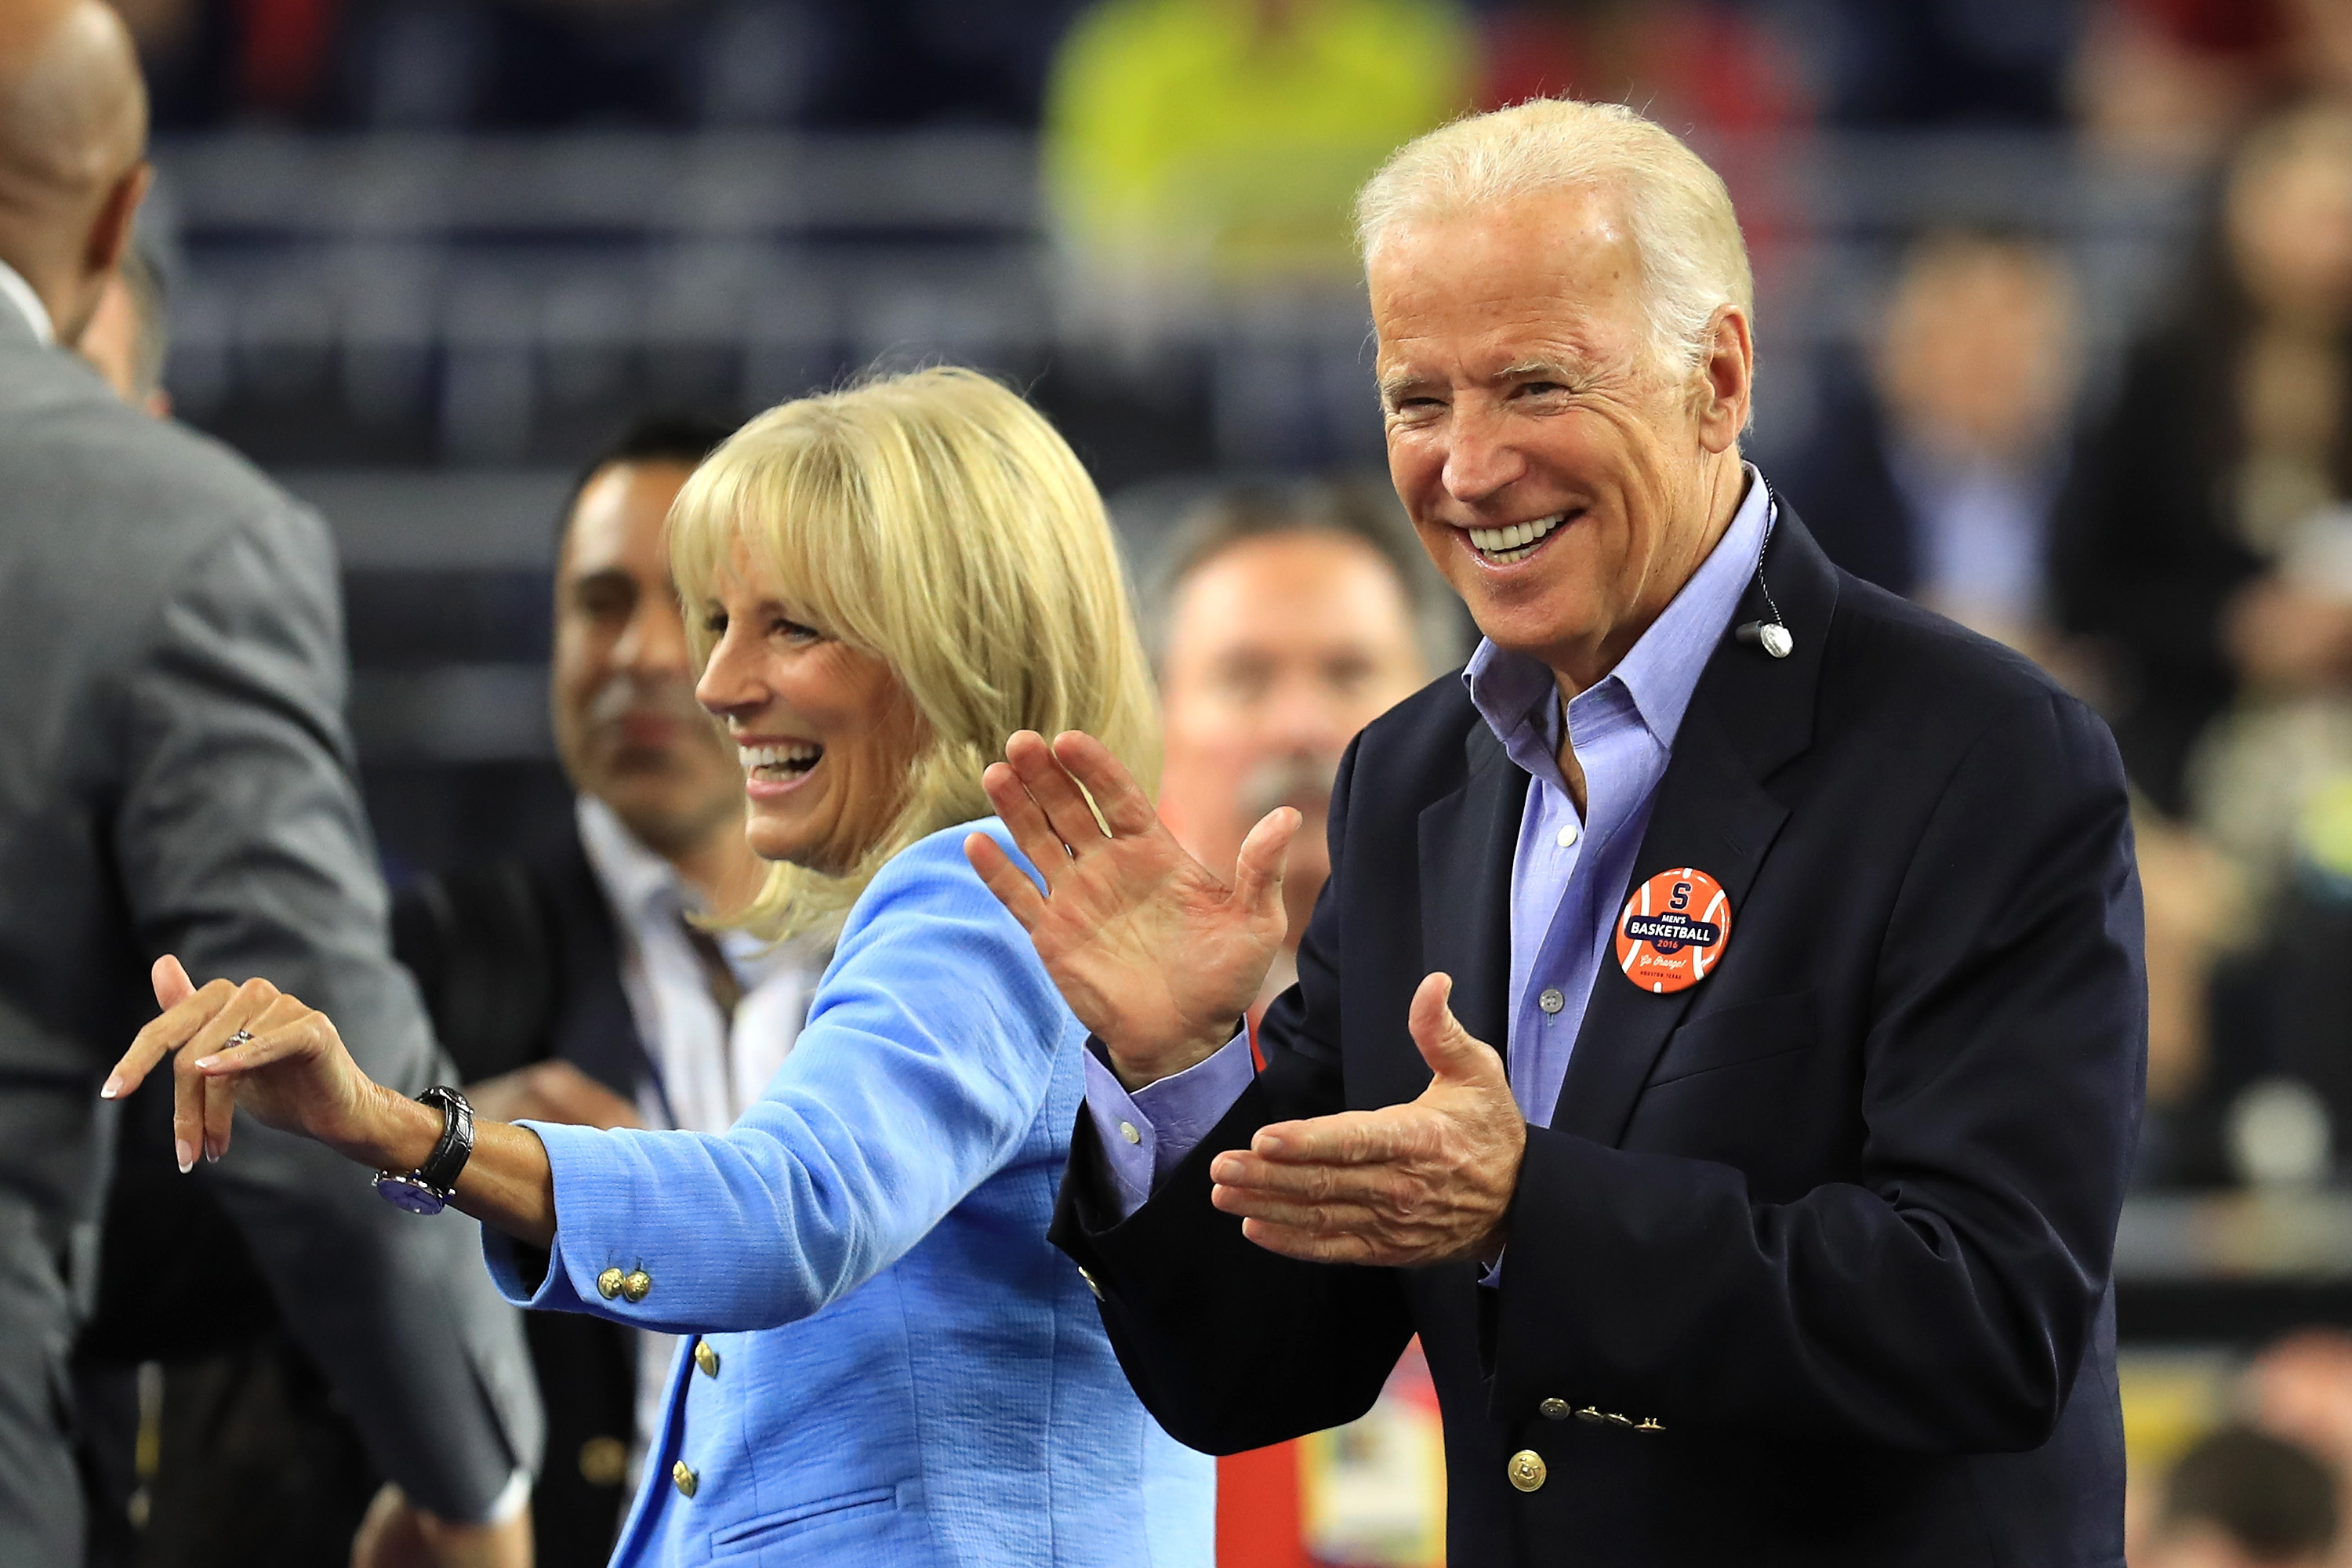 Vice President Joe Biden, right, and wife Jill Biden react prior to the NCAA Men's Final Four Semifinal between the Villanova Wildcats and the Oklahoma Sooners at NRG Stadium on April 2, 2016 in Houston, Texas.  Streeter Lecka—Getty Images